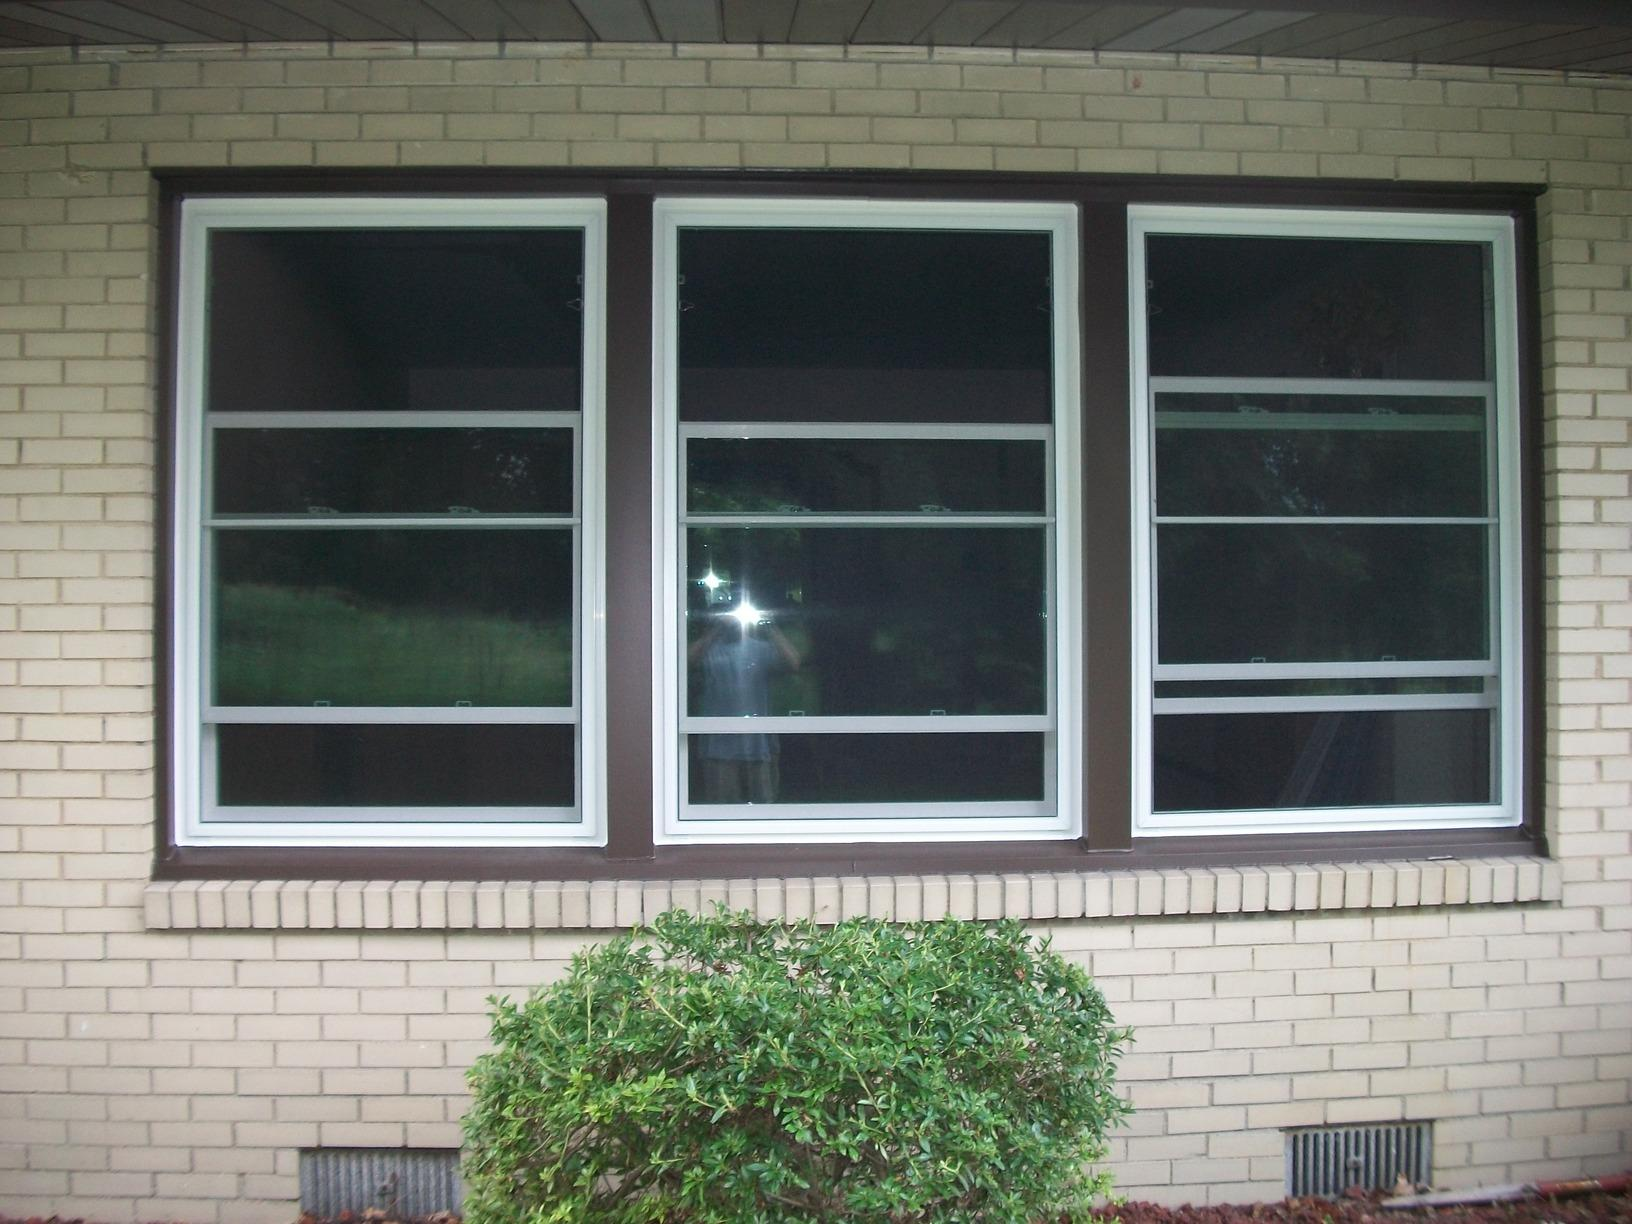 Incredible difference seen with window replacement in Vanderbilt, PA! - After Photo